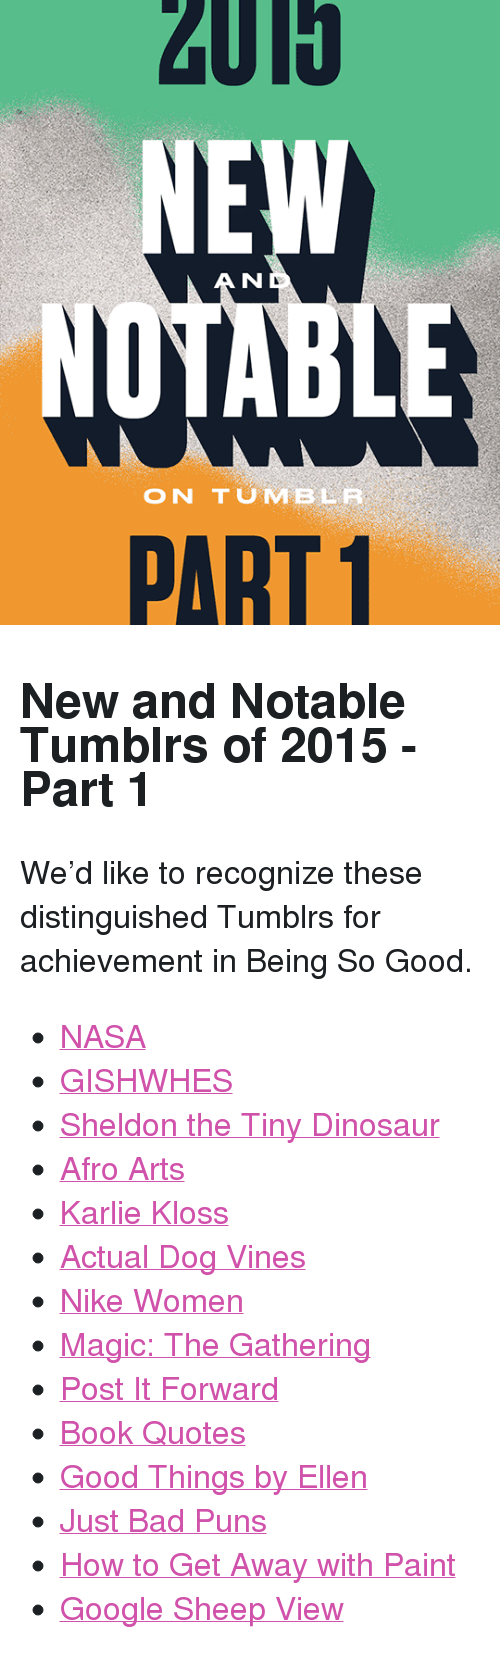 """Bad, Dinosaur, and Google: 2015  NU  ON TUMBLE  PART 1 <h2>New and Notable Tumblrs of 2015 - Part 1</h2><p>We&rsquo;d like to recognize these distinguished Tumblrs for achievement in Being So Good.<br/></p><ul><li><a href=""""http://nasa.tumblr.com"""">NASA</a></li>  <li><a href=""""http://officialgishwhes.tumblr.com"""">GISHWHES</a></li>  <li><a href=""""http://sheldontinydino.tumblr.com"""">Sheldon the Tiny Dinosaur</a></li>  <li><a href=""""http://afro-arts.tumblr.com"""">Afro Arts</a></li>  <li><a href=""""http://karliekloss.tumblr.com"""">Karlie Kloss</a></li>  <li><a href=""""http://actualdogvines.tumblr.com"""">Actual Dog Vines</a></li>  <li><a href=""""http://nikewomen.tumblr.com"""">Nike Women</a></li>  <li><a href=""""http://wizardsmagic.tumblr.com"""">Magic: The Gathering</a></li>  <li><a href=""""http://postitforward.tumblr.com"""">Post It Forward</a></li>  <li><a href=""""http://booksqouted.tumblr.com"""">Book Quotes</a></li>  <li><a href=""""http://goodthingsellen.tumblr.com"""">Good Things by Ellen</a></li>  <li><a href=""""http://justbadpuns.tumblr.com"""">Just Bad Puns</a></li>  <li><a href=""""http://howtogetawaywithpaint.tumblr.com"""">How to Get Away with Paint</a></li>  <li><a href=""""http://googlesheepview.tumblr.com"""">Google Sheep View</a></li> </ul>"""